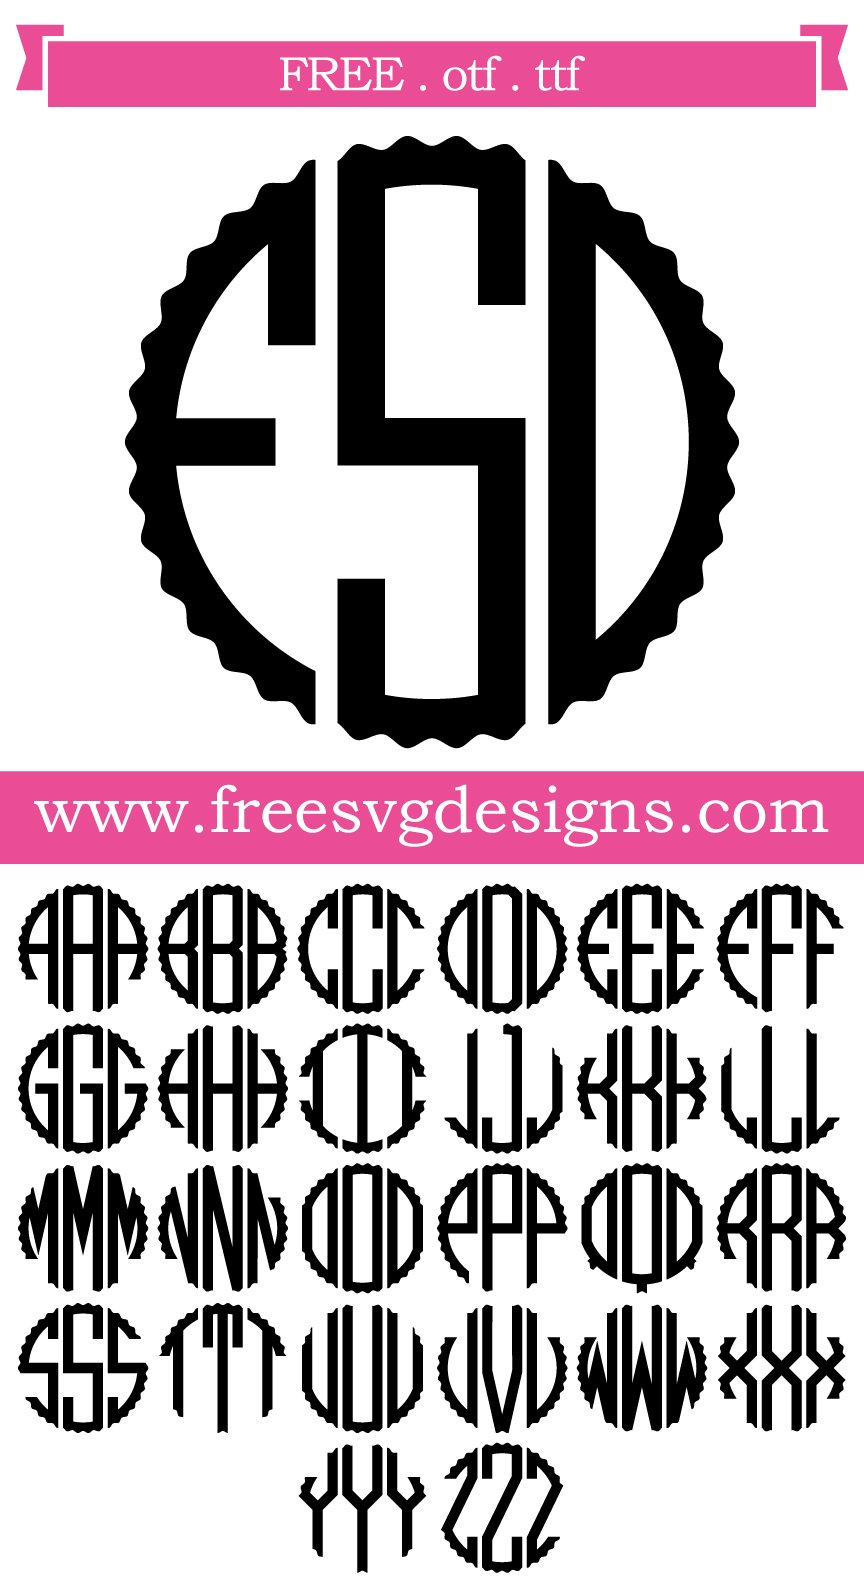 Free monogram font. This FREE download includes OTF and TTF files for personal cutting projects. Free vector / free svg monogram / free svg images for cricut